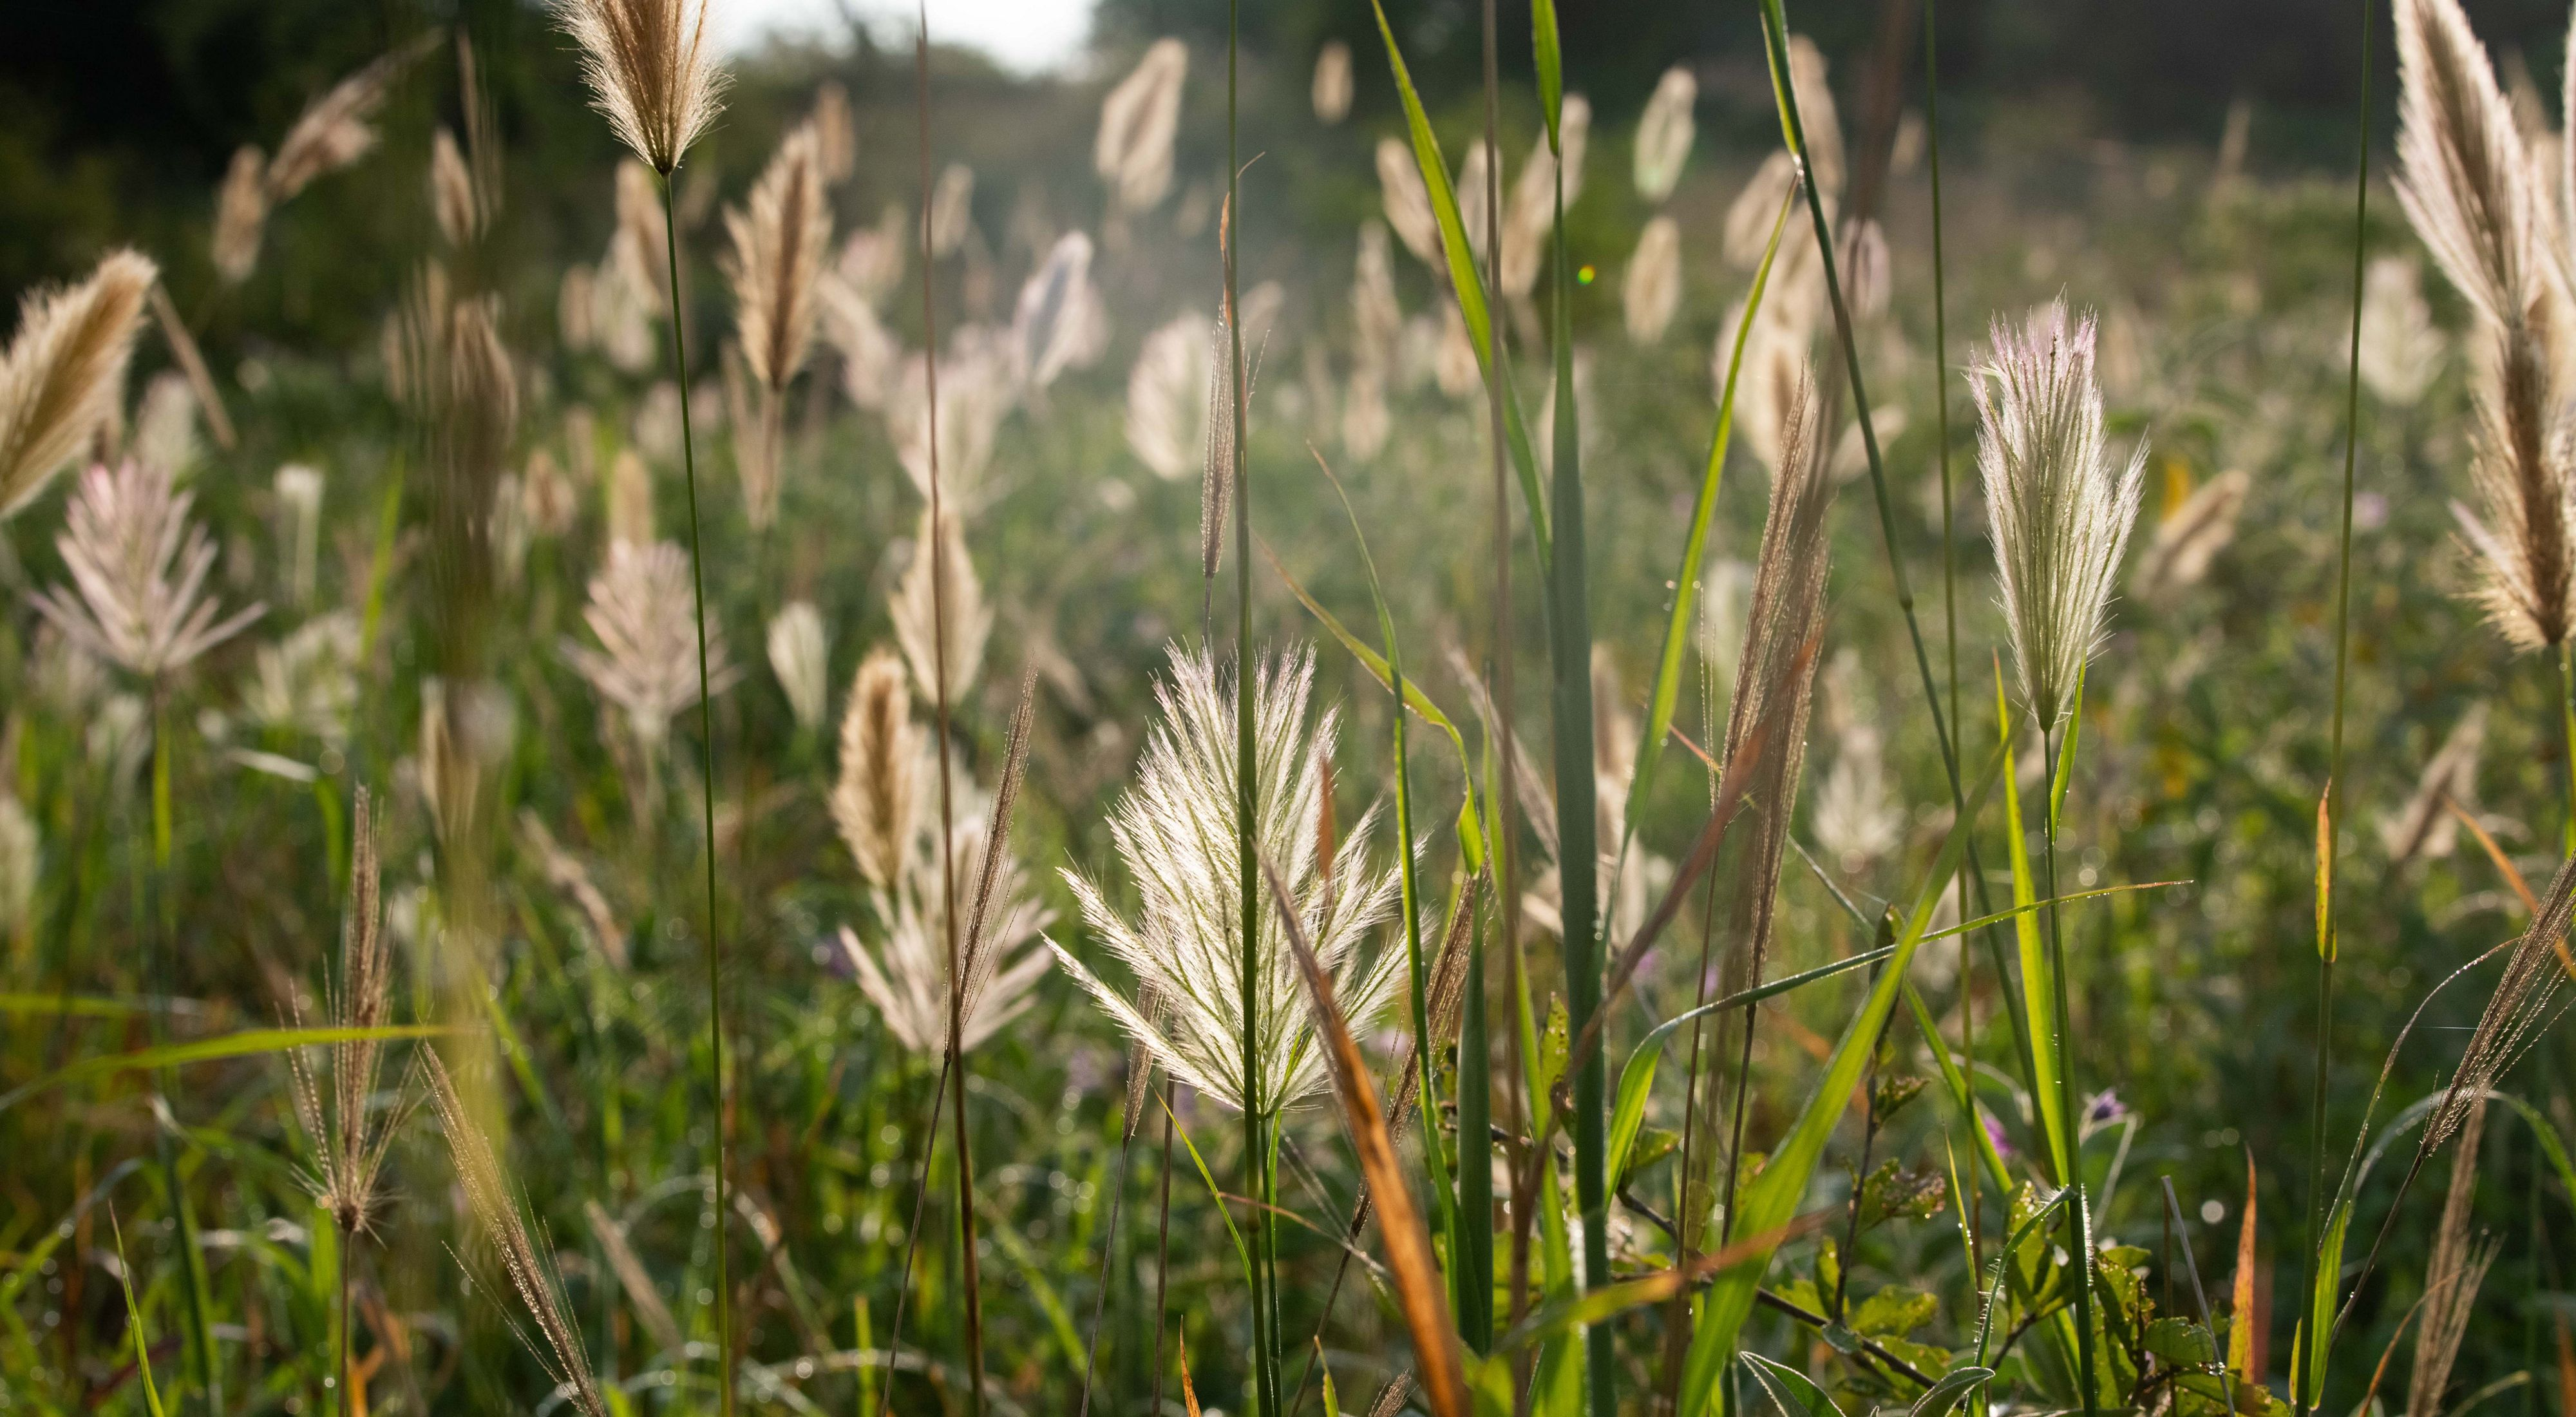 grass growing in the sunlight